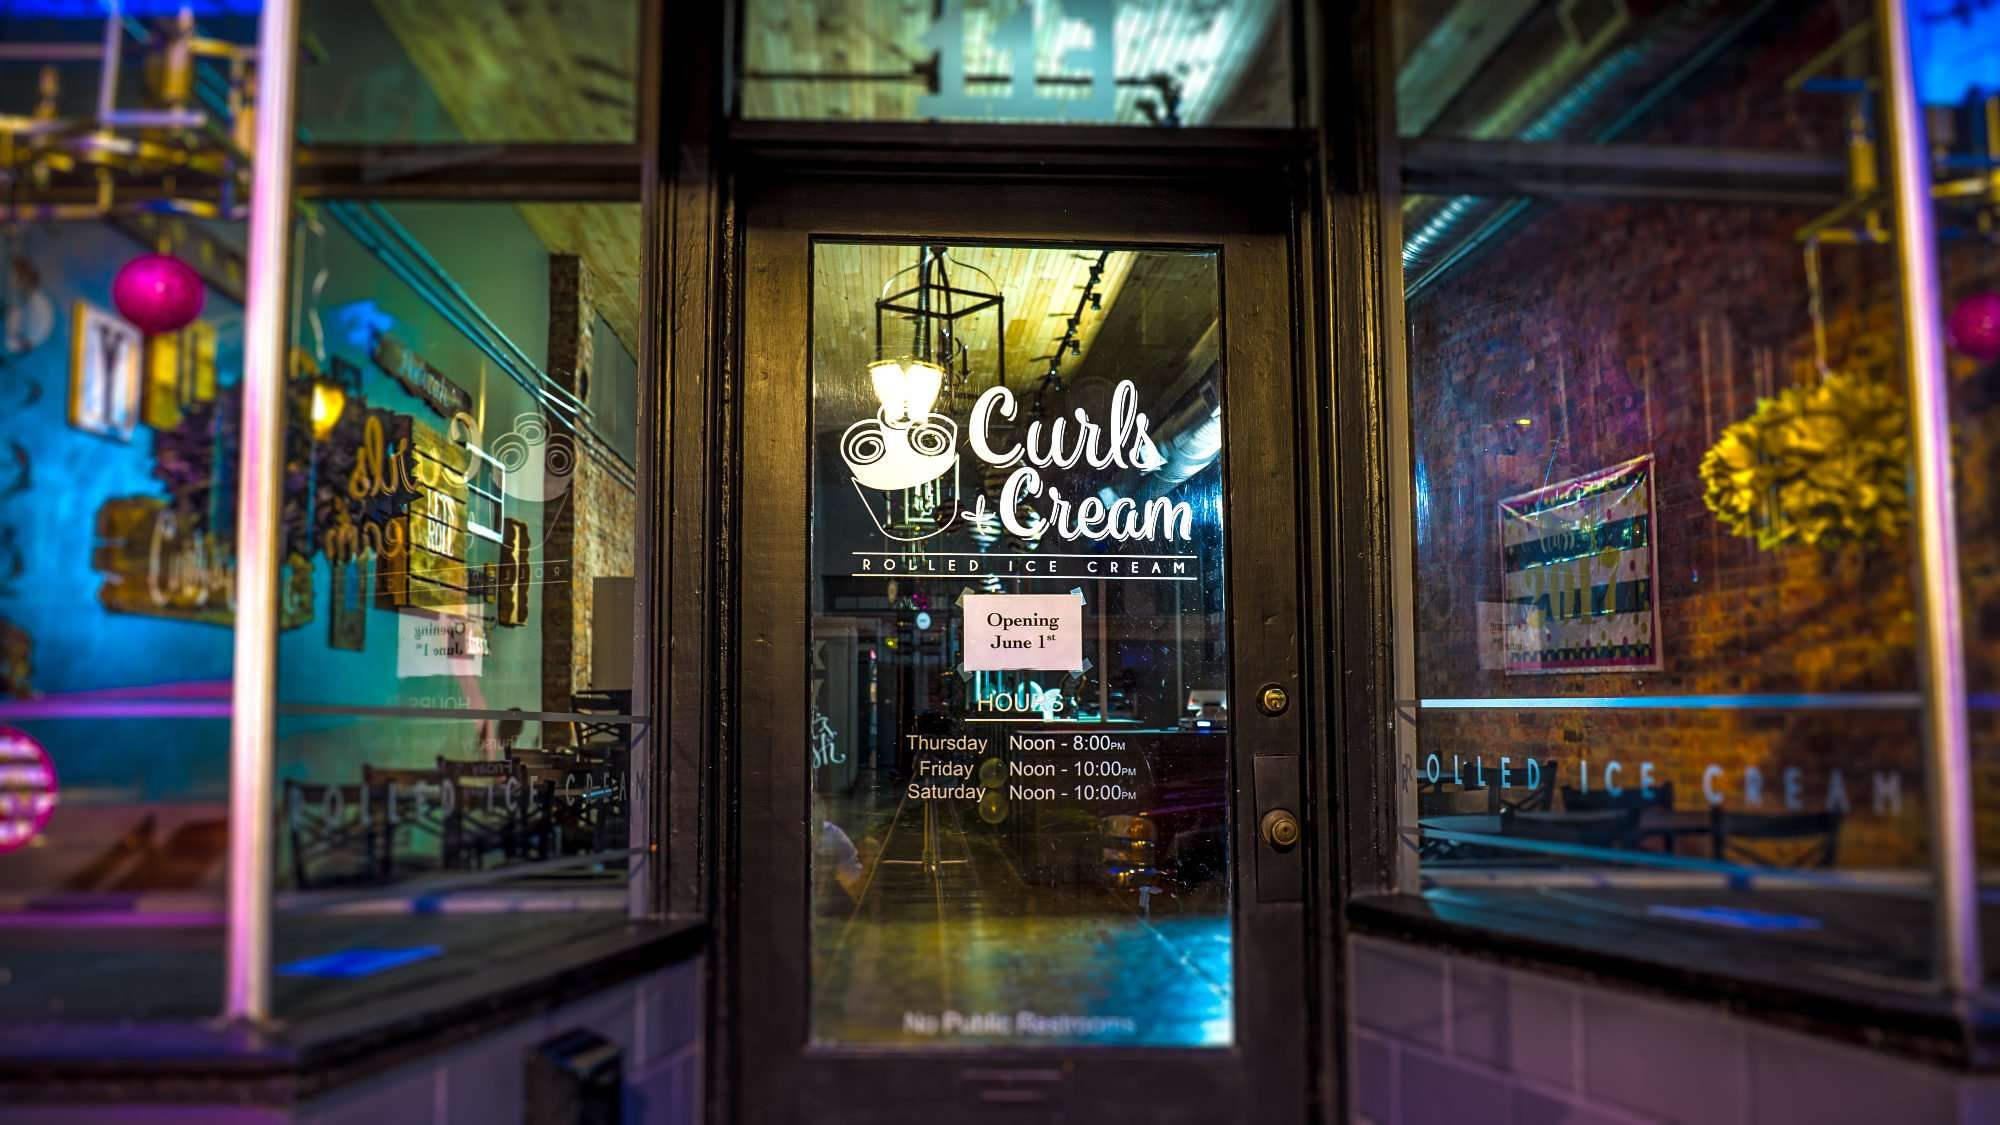 May 1, 2017 - Curls & Cream Rolled Ice Cream Shop coming soon to downtown Paducah, KY/photonews247.com